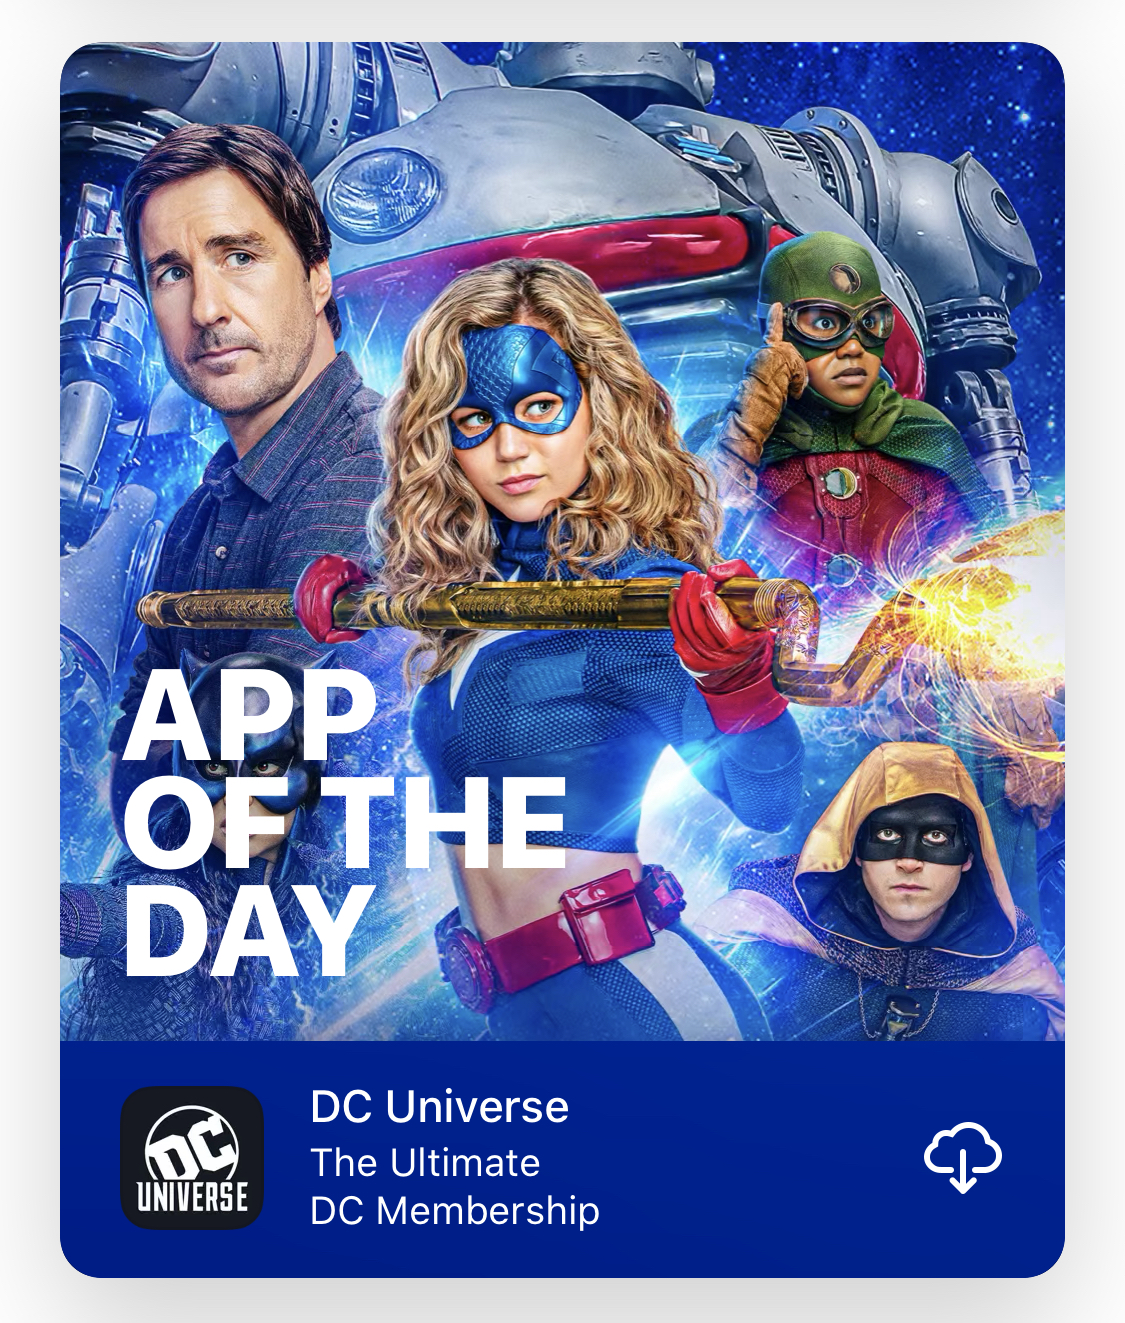 DC Universe: App of the Day